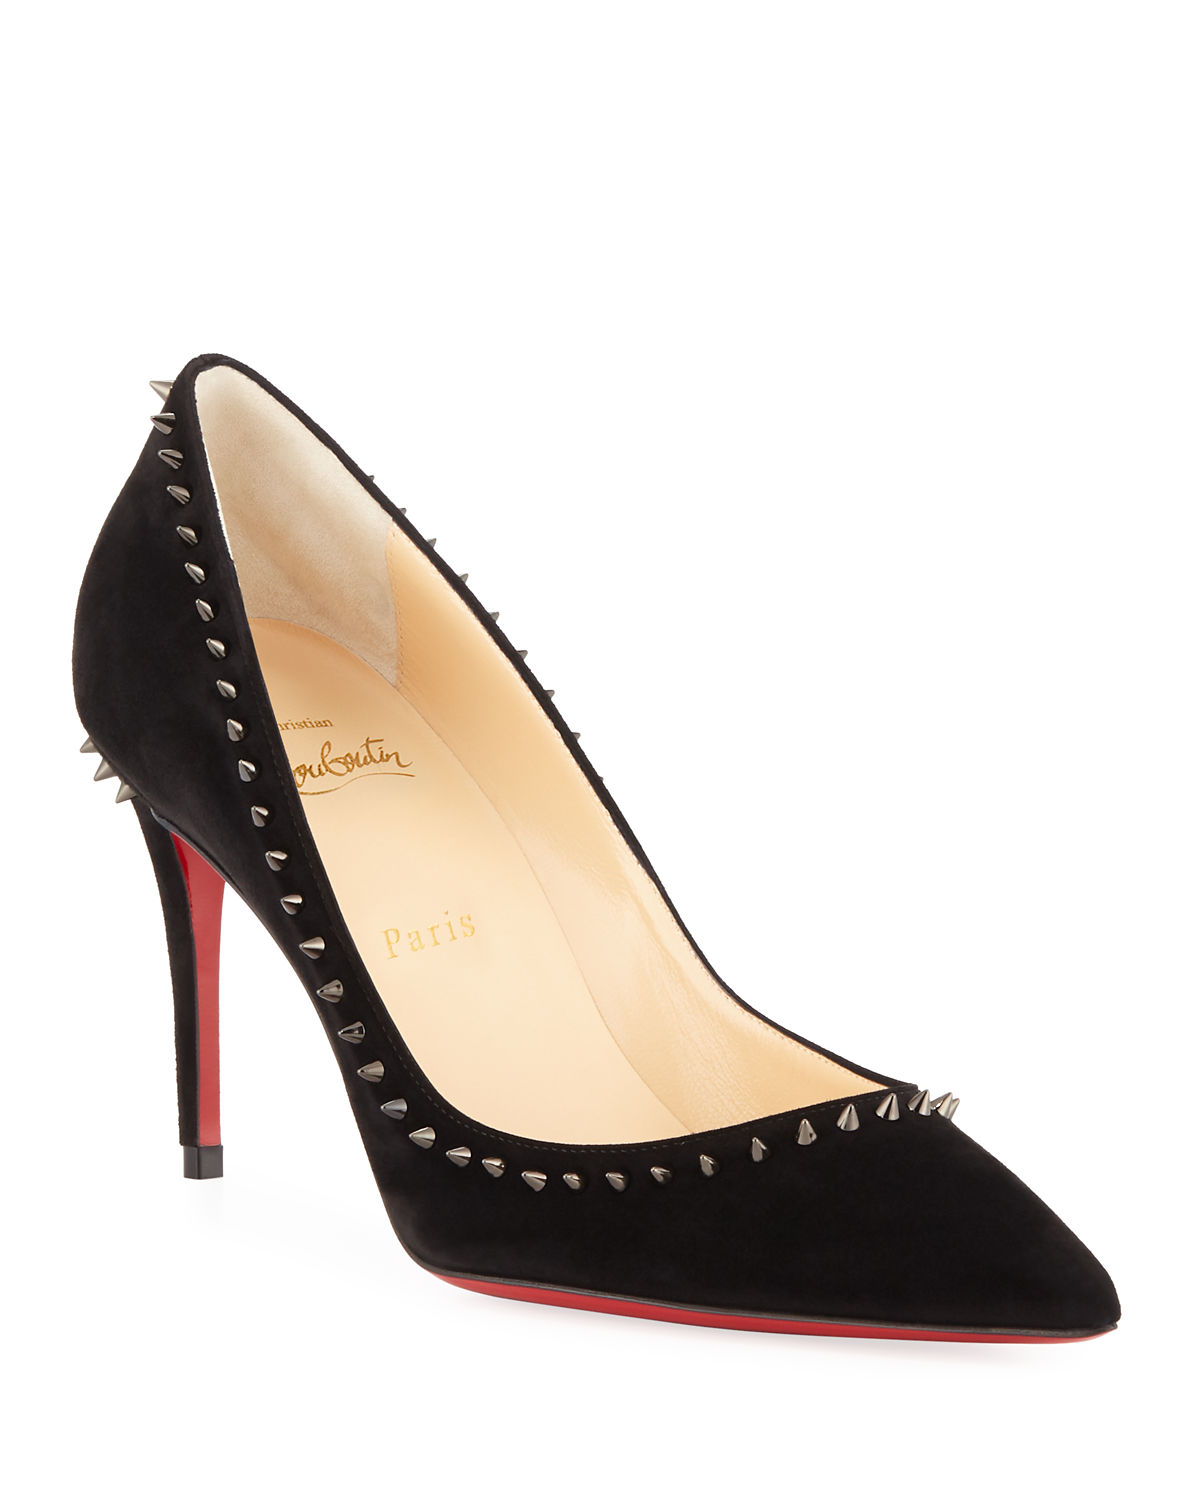 ce34001b4492 Christian Louboutin Anjalina Suede Spiked Red Sole Pump